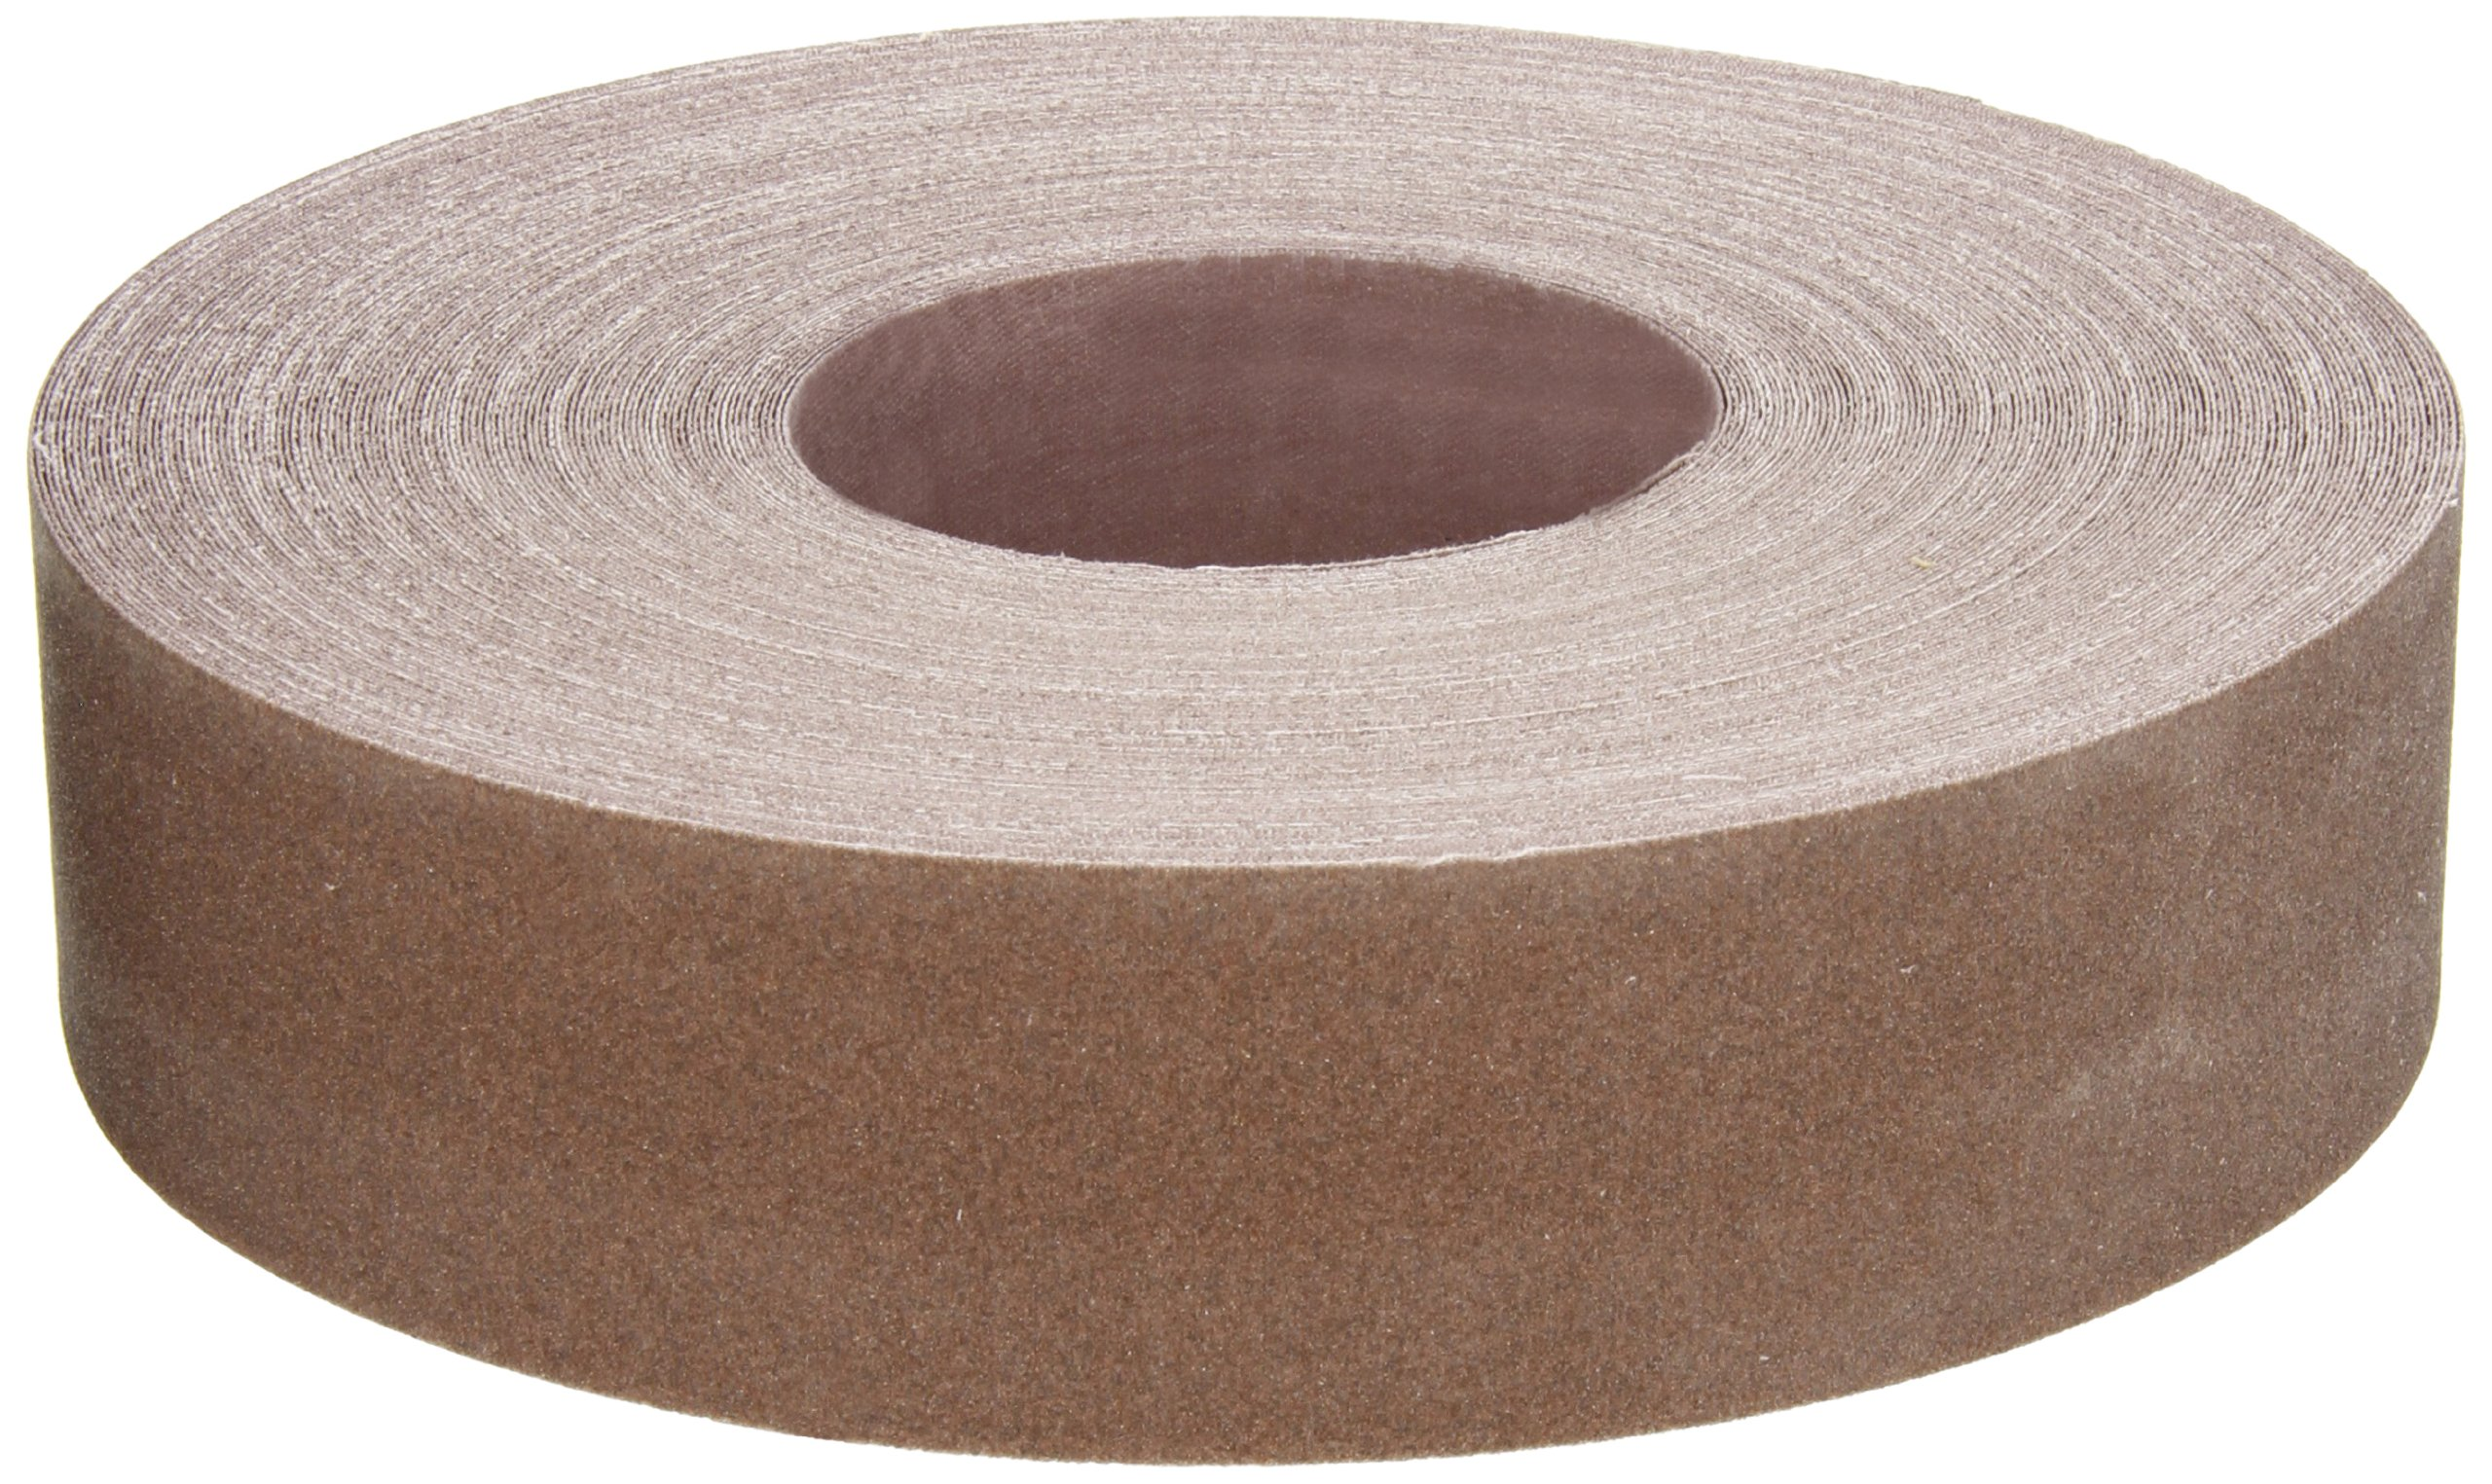 Norton K225 Metalite Abrasive Roll, Cloth Backing, Aluminum Oxide, 2'' Width x 50yd Length, Grit P120 (Pack of 5) by Norton Abrasives - St. Gobain